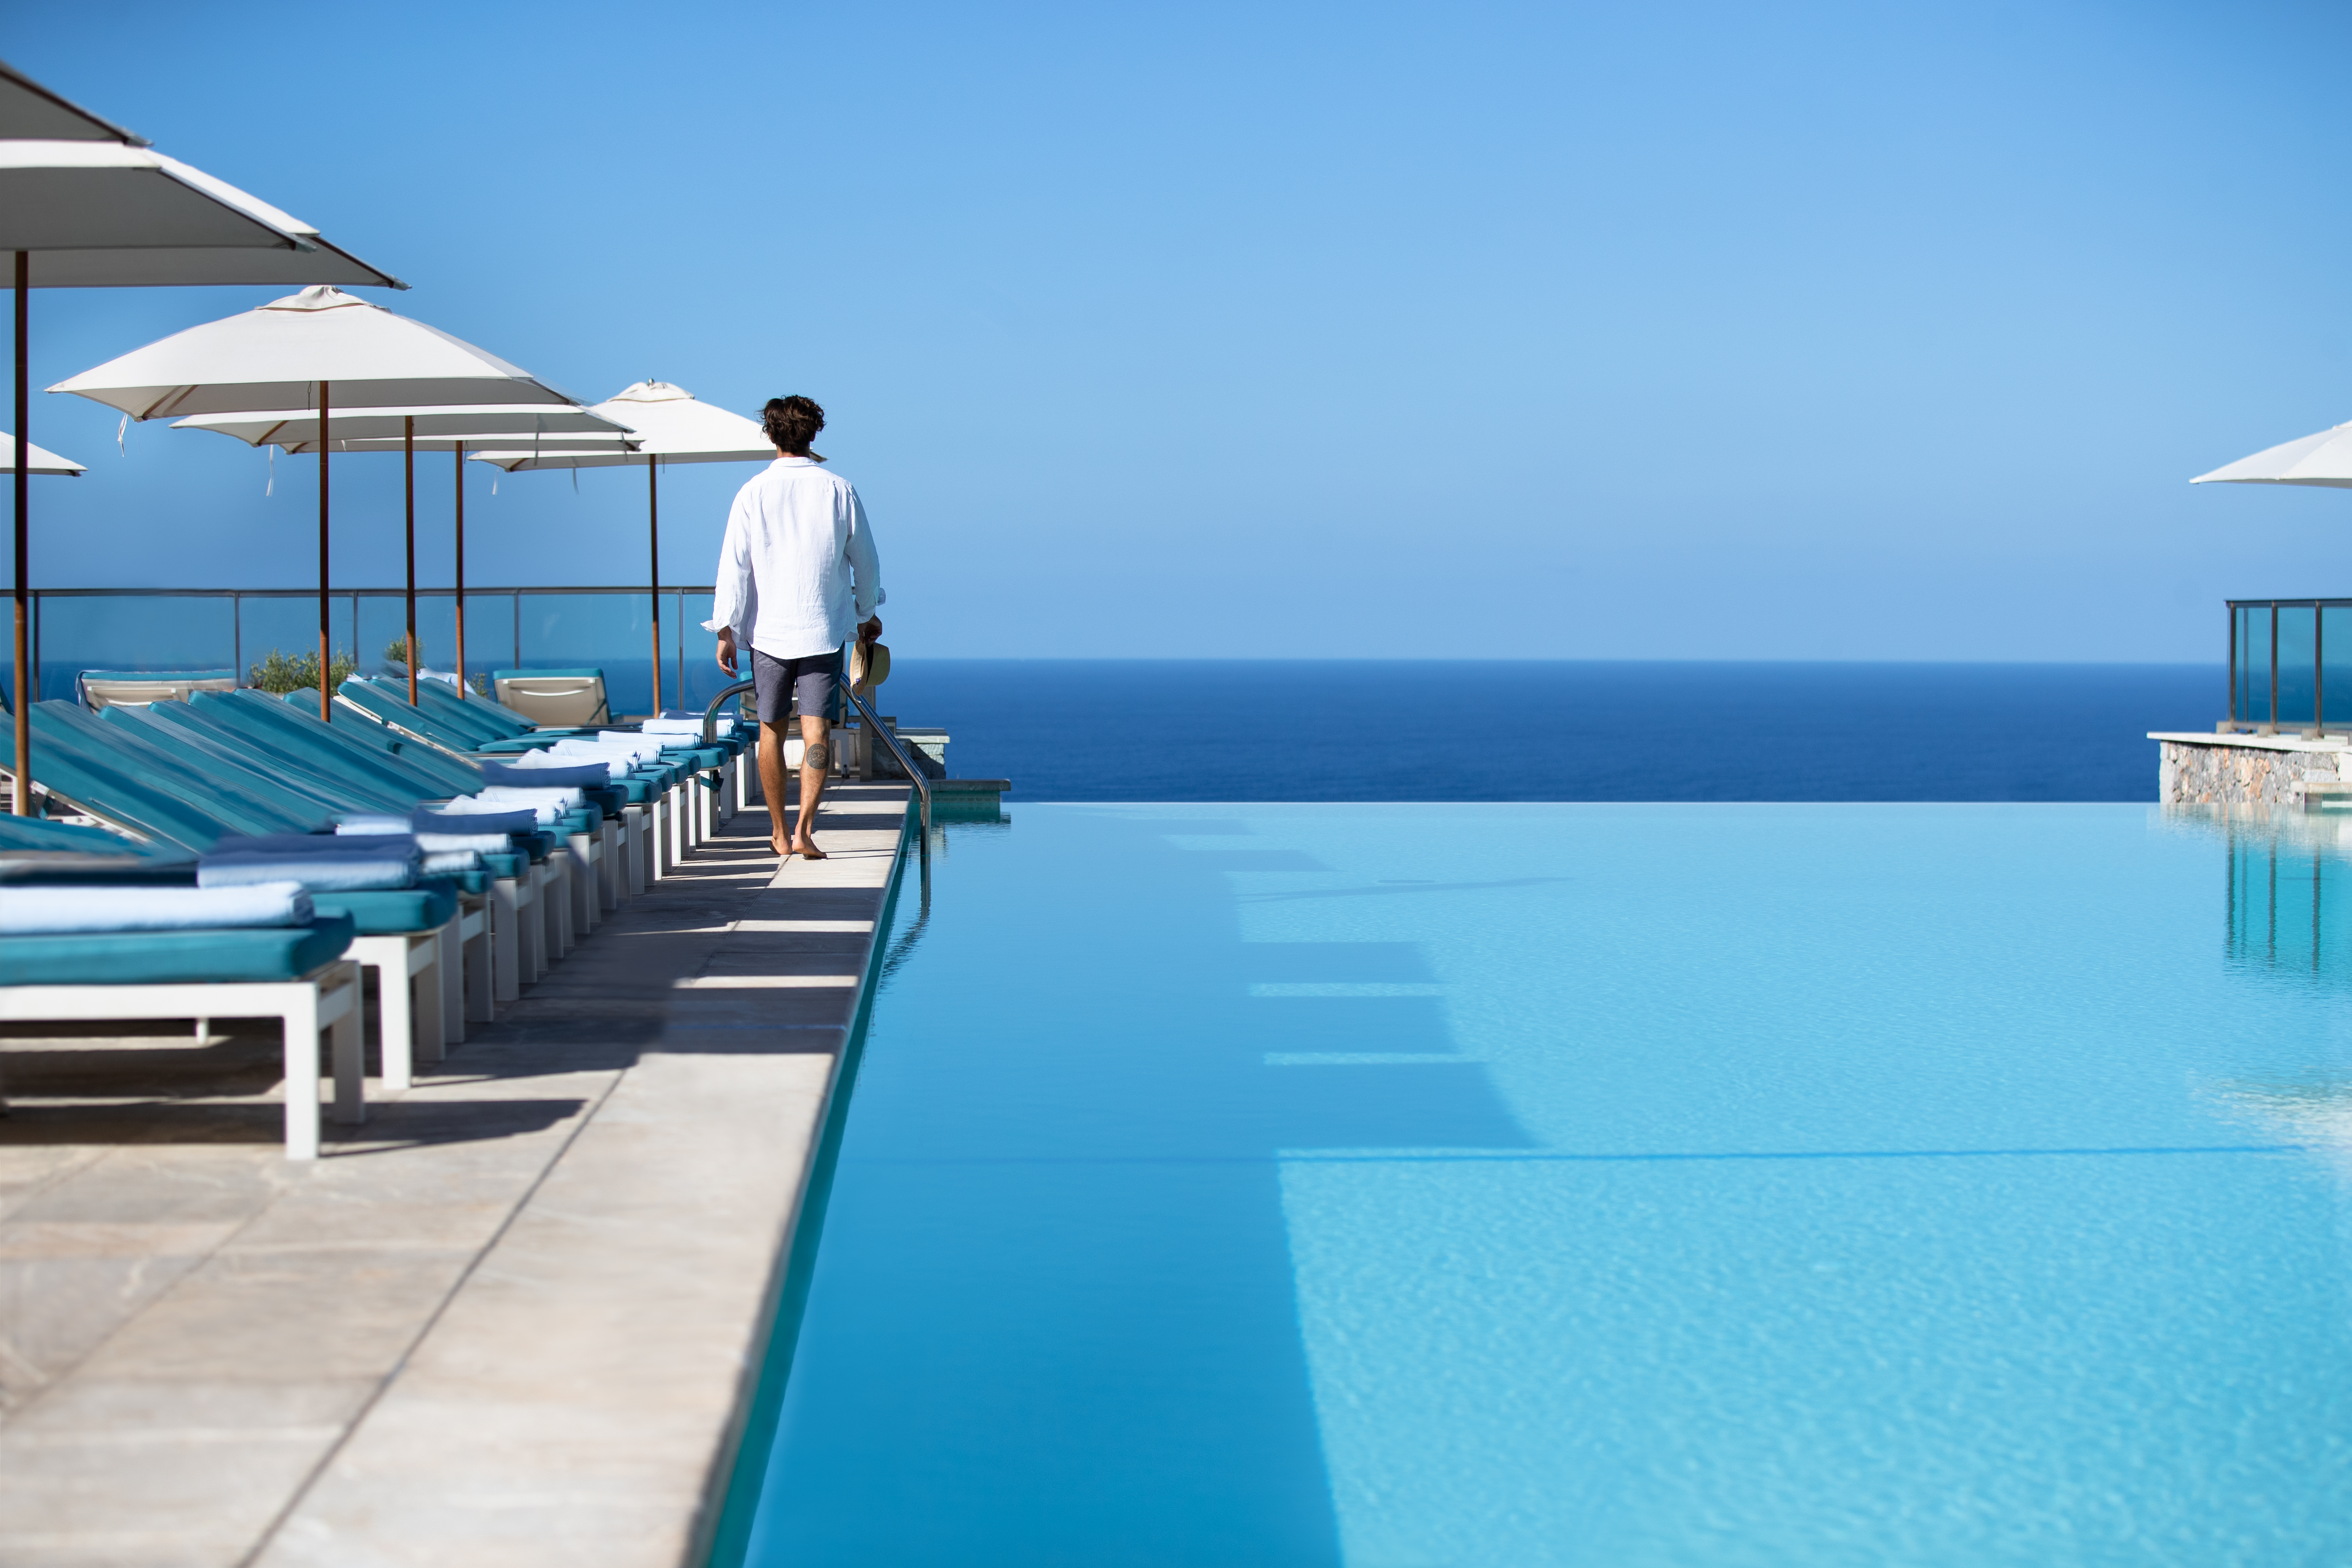 Emptyleg partners with Jumeirah Hotels & Resorts in Mallorca